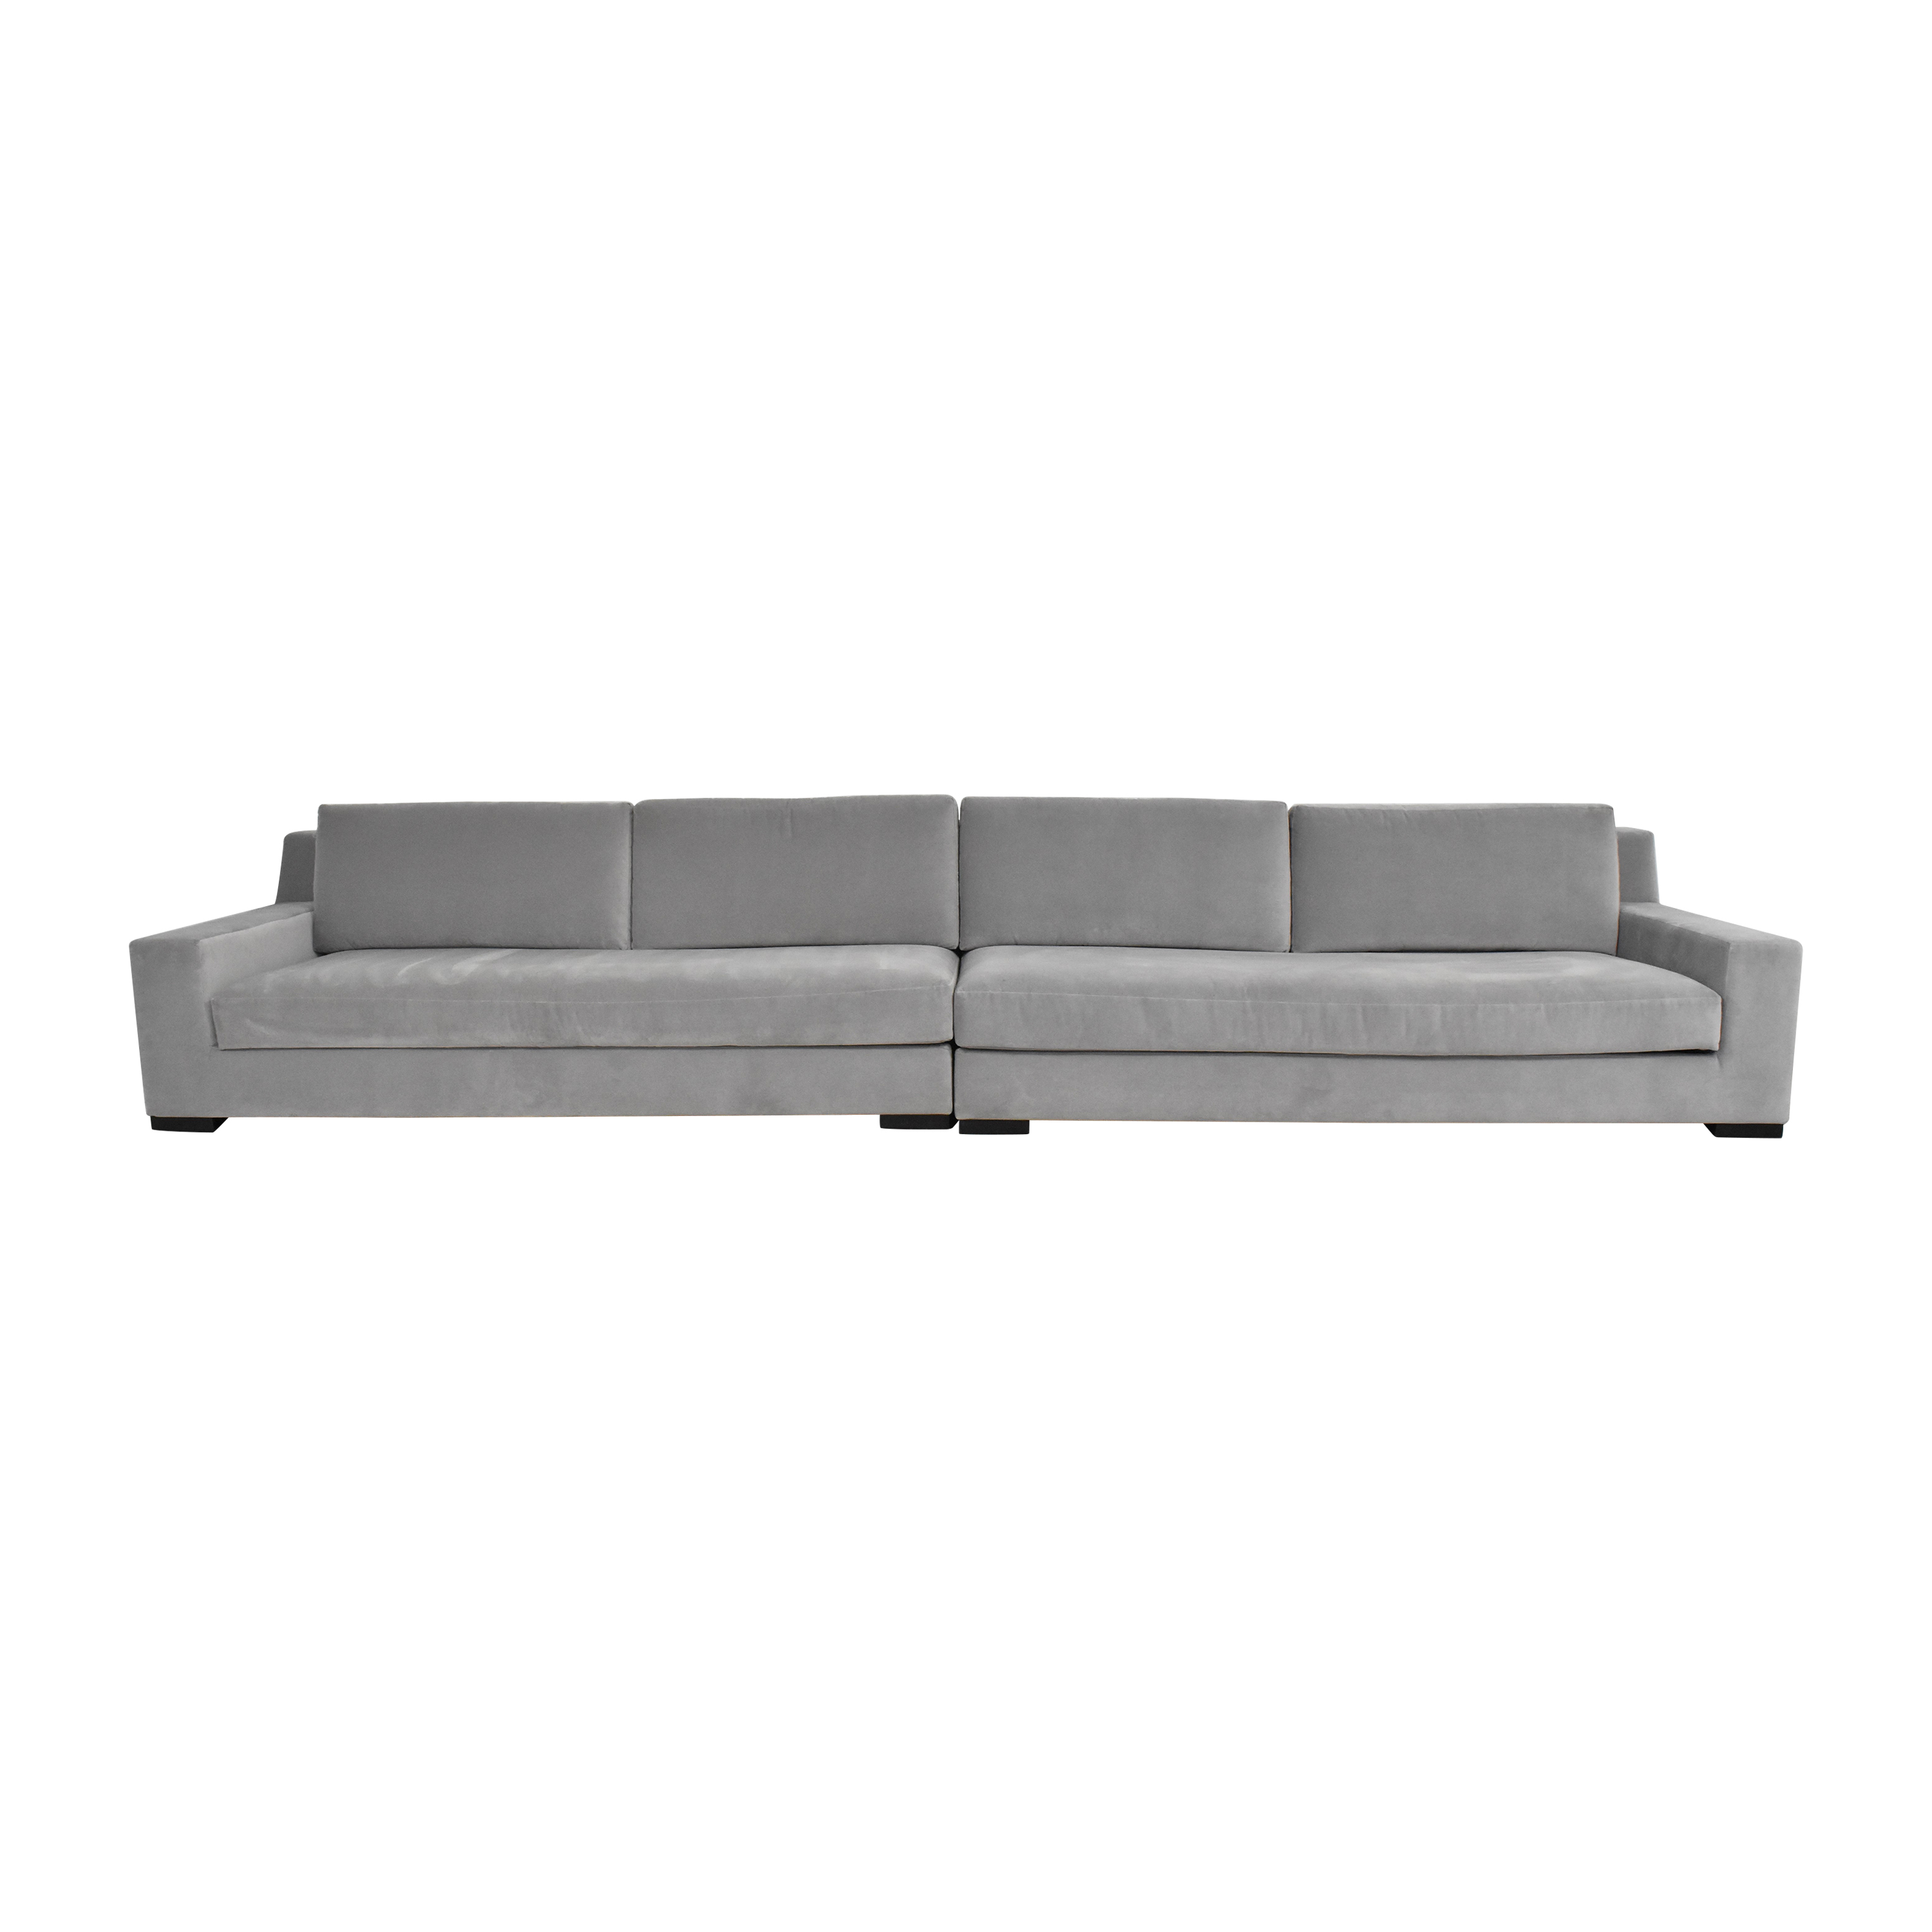 Restoration Hardware Restoration Hardware Modena Track Arm Sectional Sofa ct